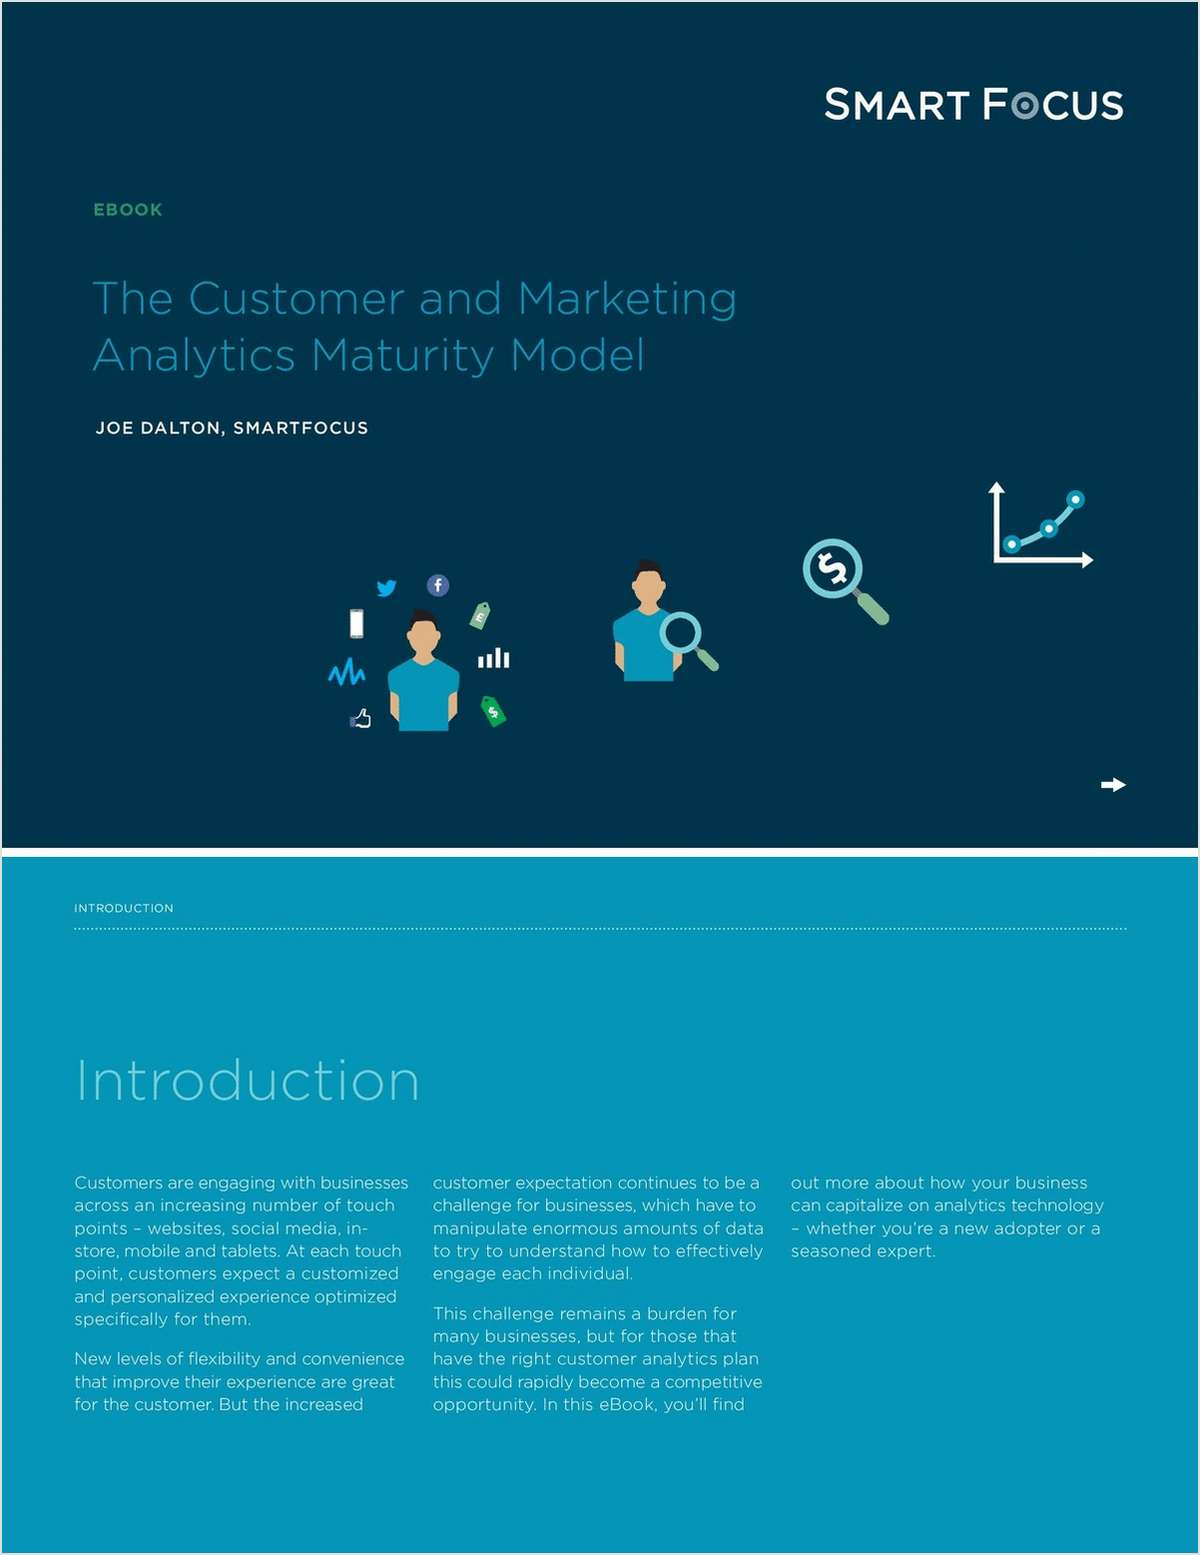 The Customer and Marketing Analytics Maturity Model